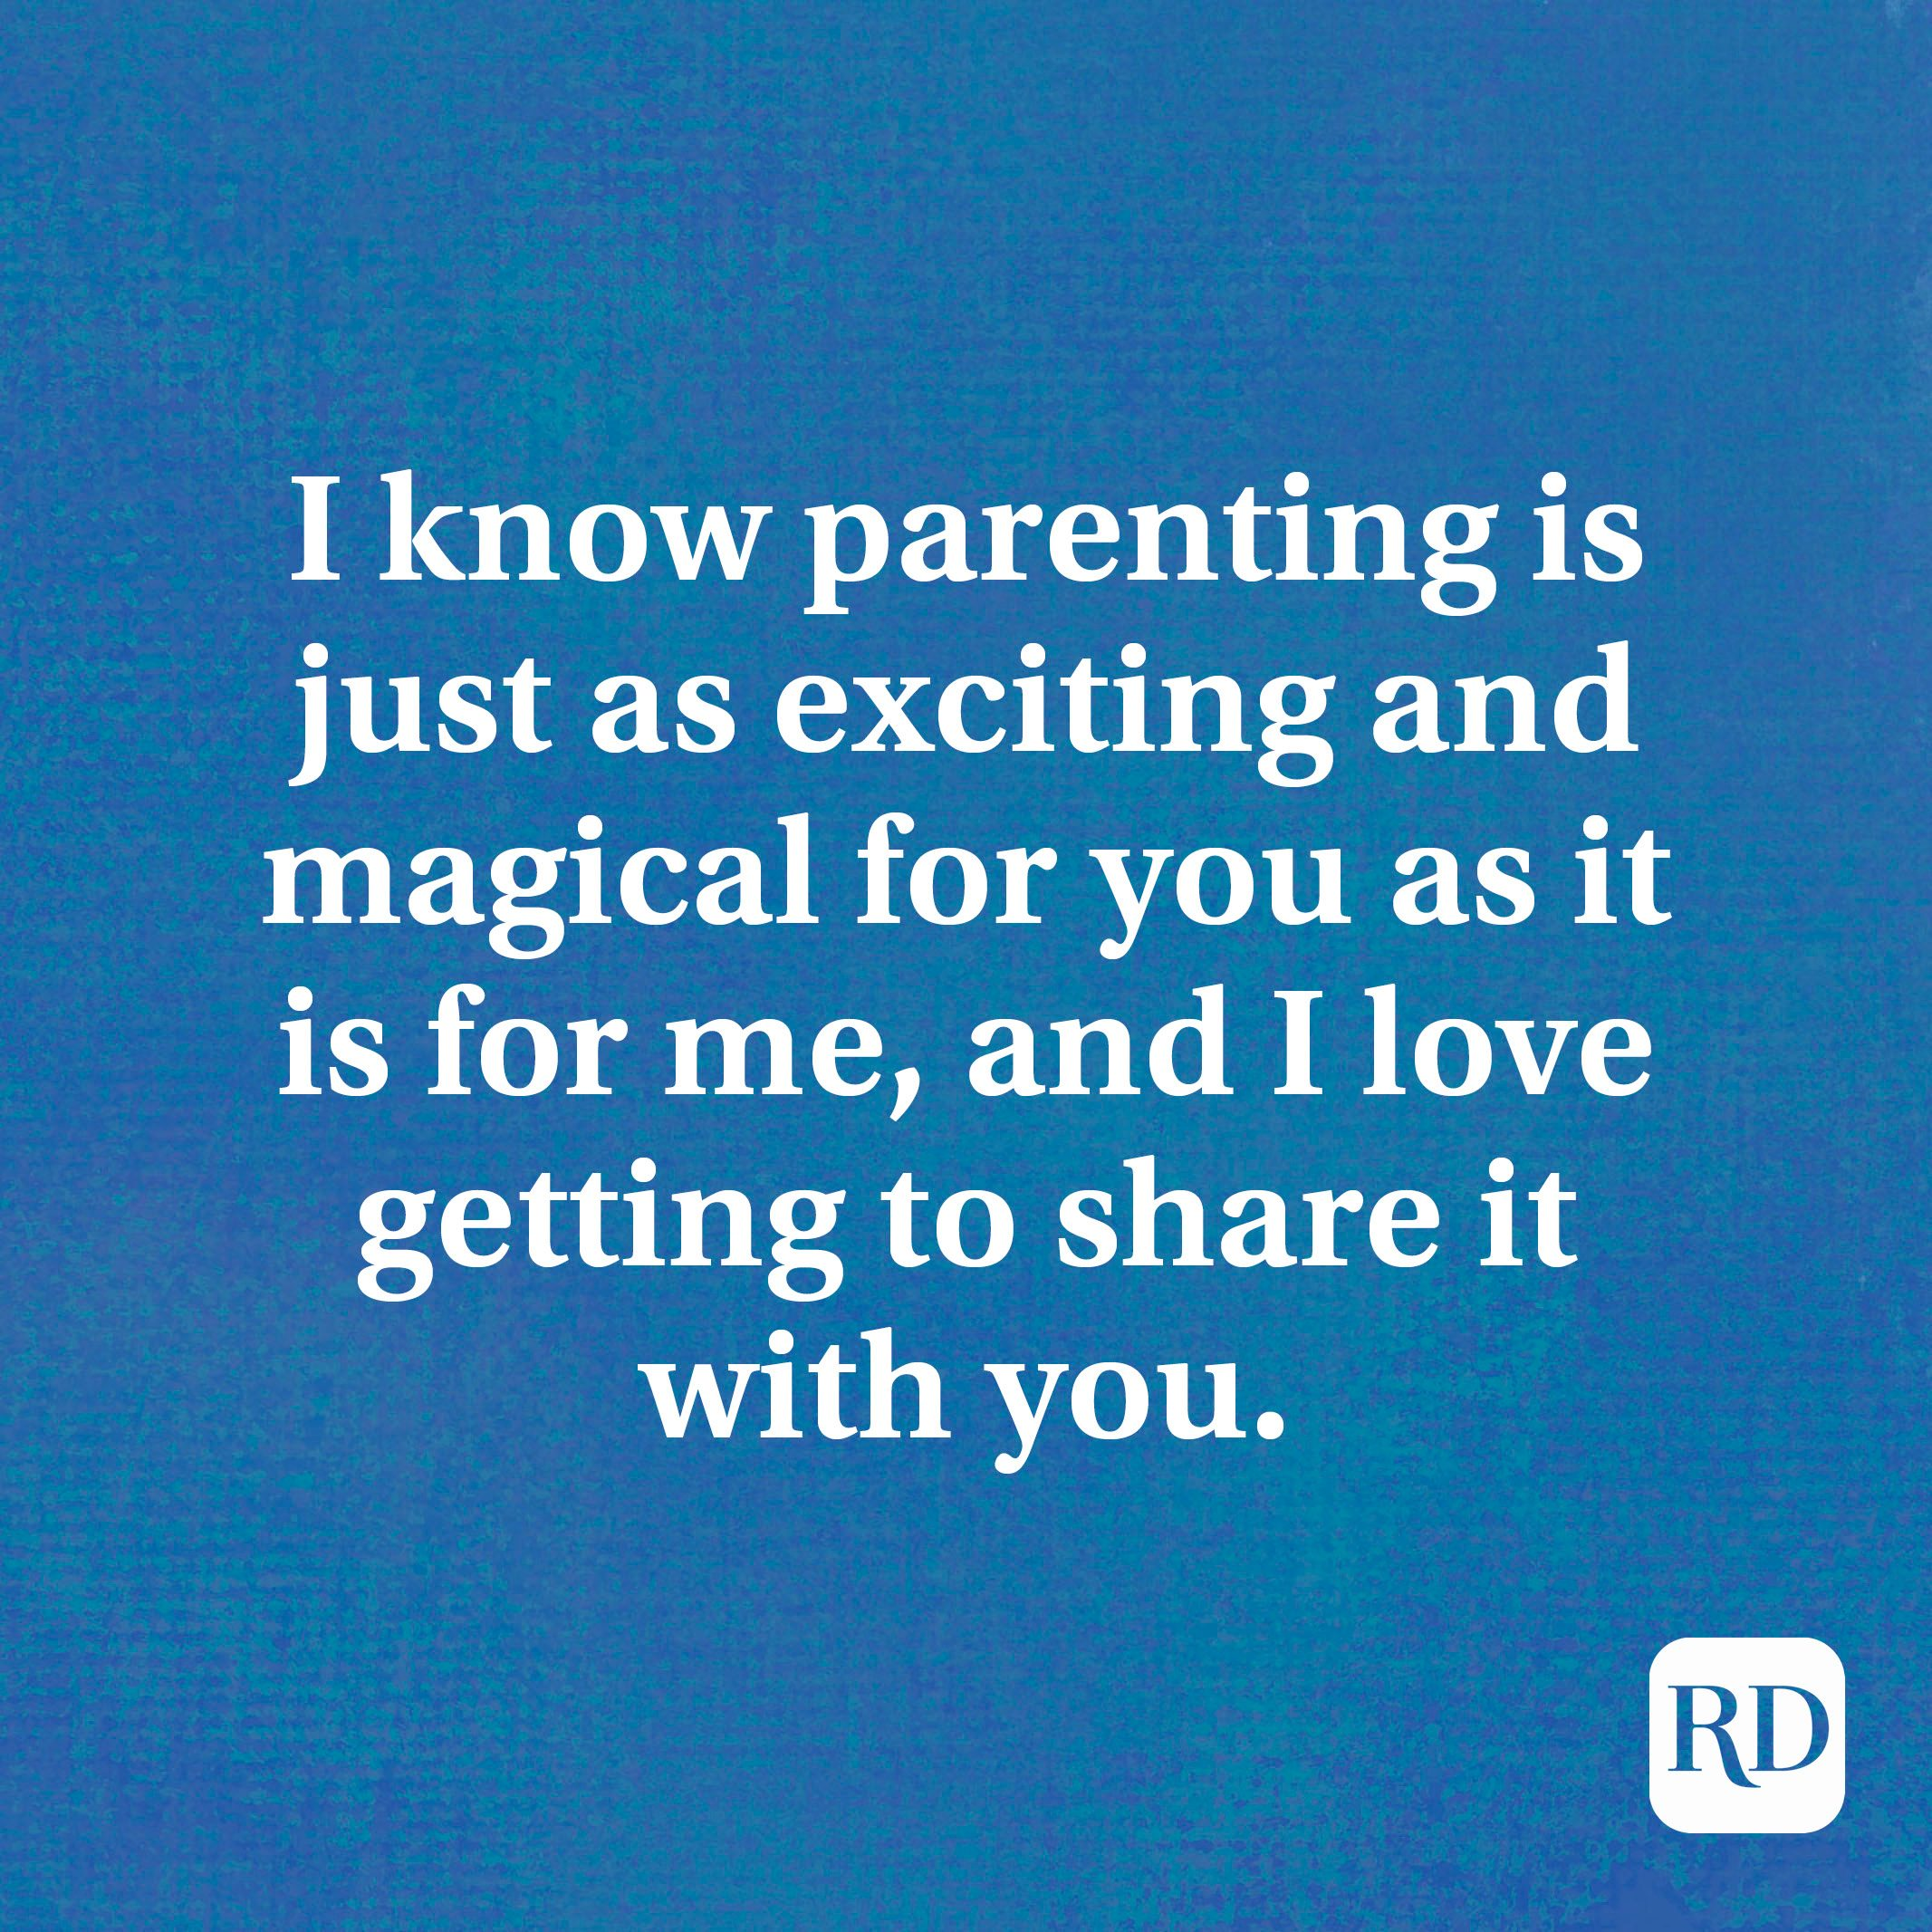 I know parenting is just as exciting and magical for you as it is for me, and I love getting to share it with you.